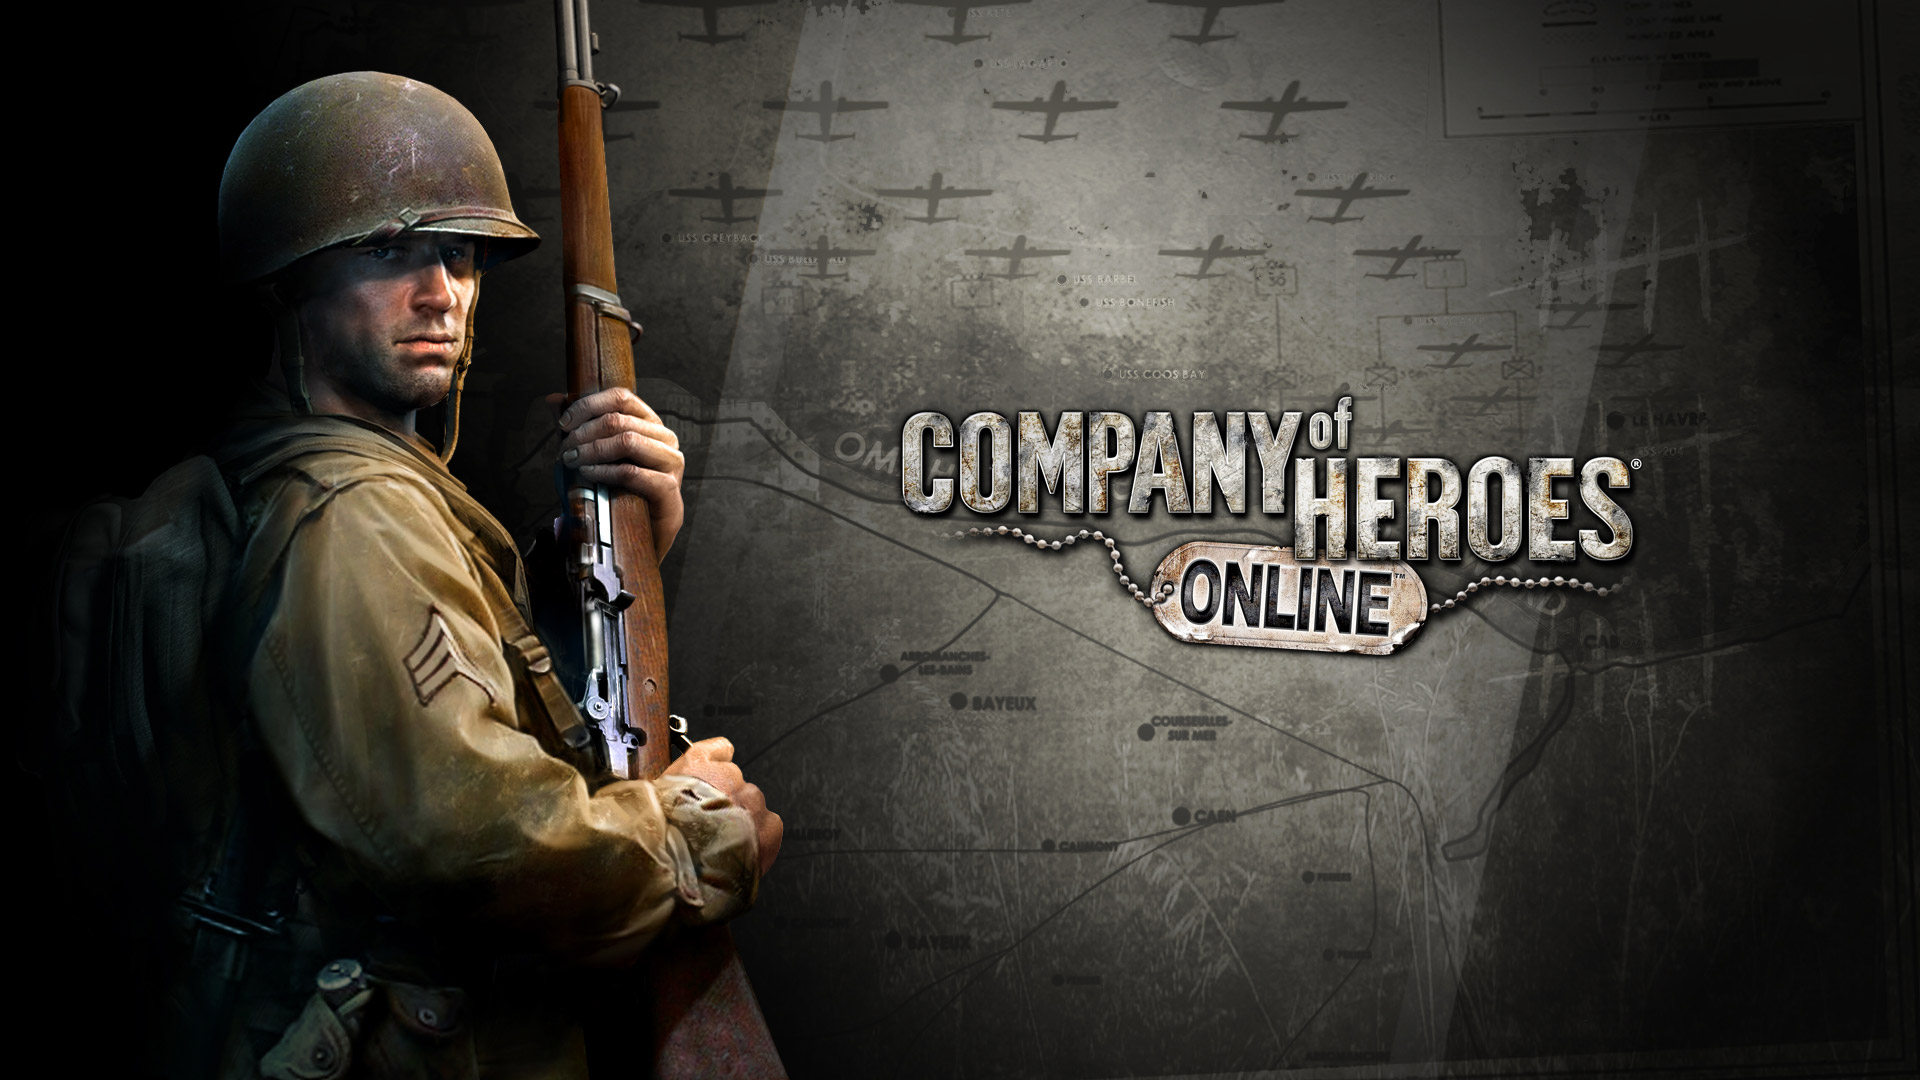 Free Company of Heroes Online Wallpaper in 1920x1080